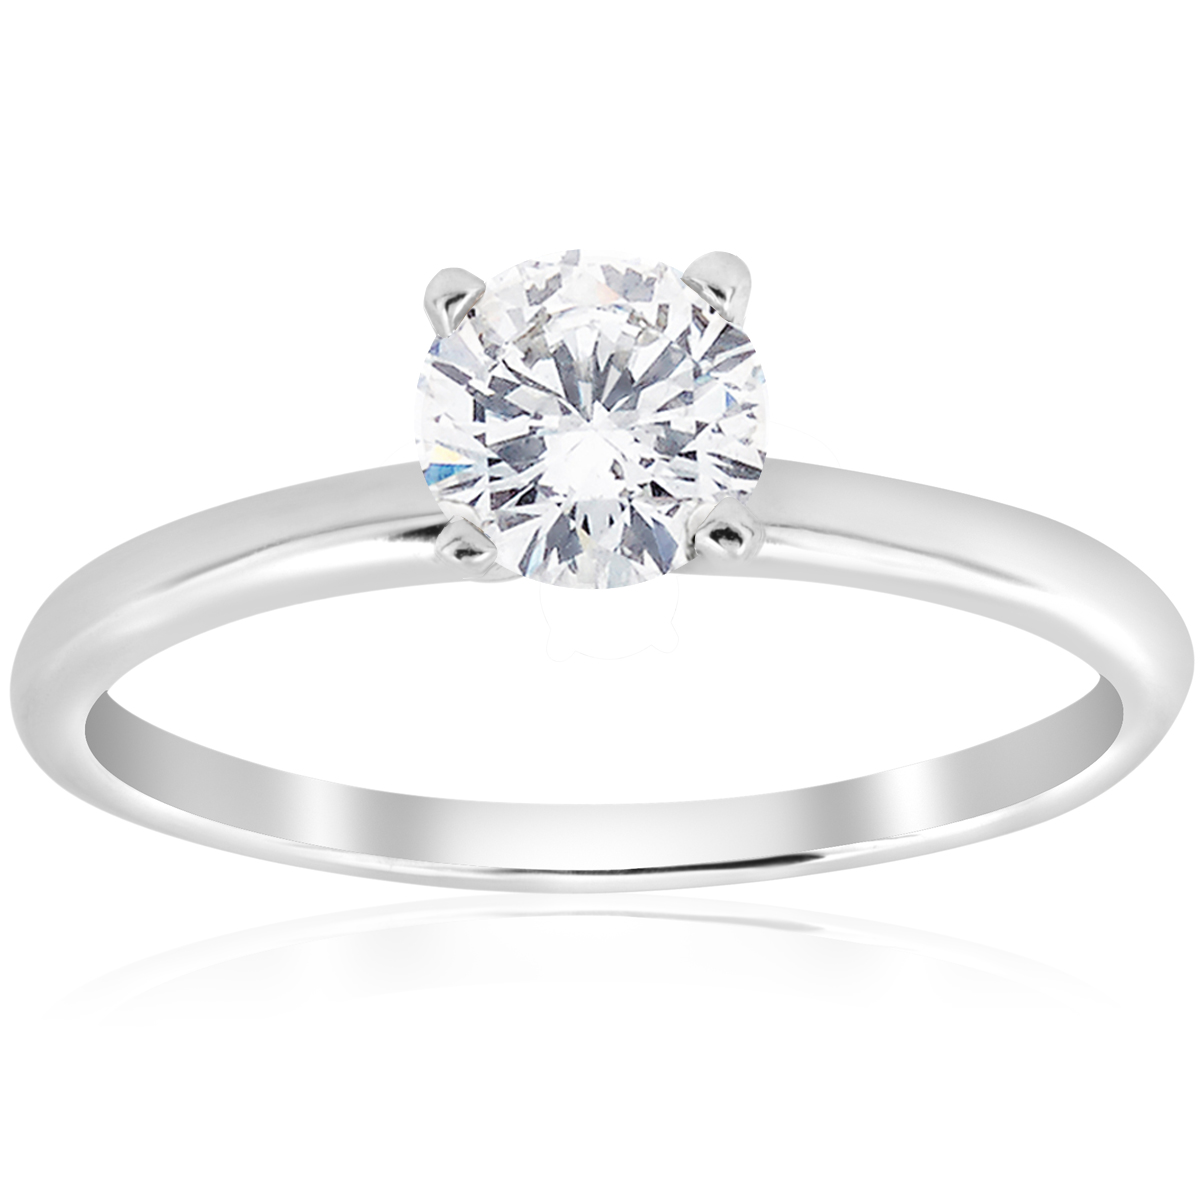 5 8ct Solitaire Round Diamond Engagement Ring 14K White Gold Brilliant Jewelry by Pompeii3